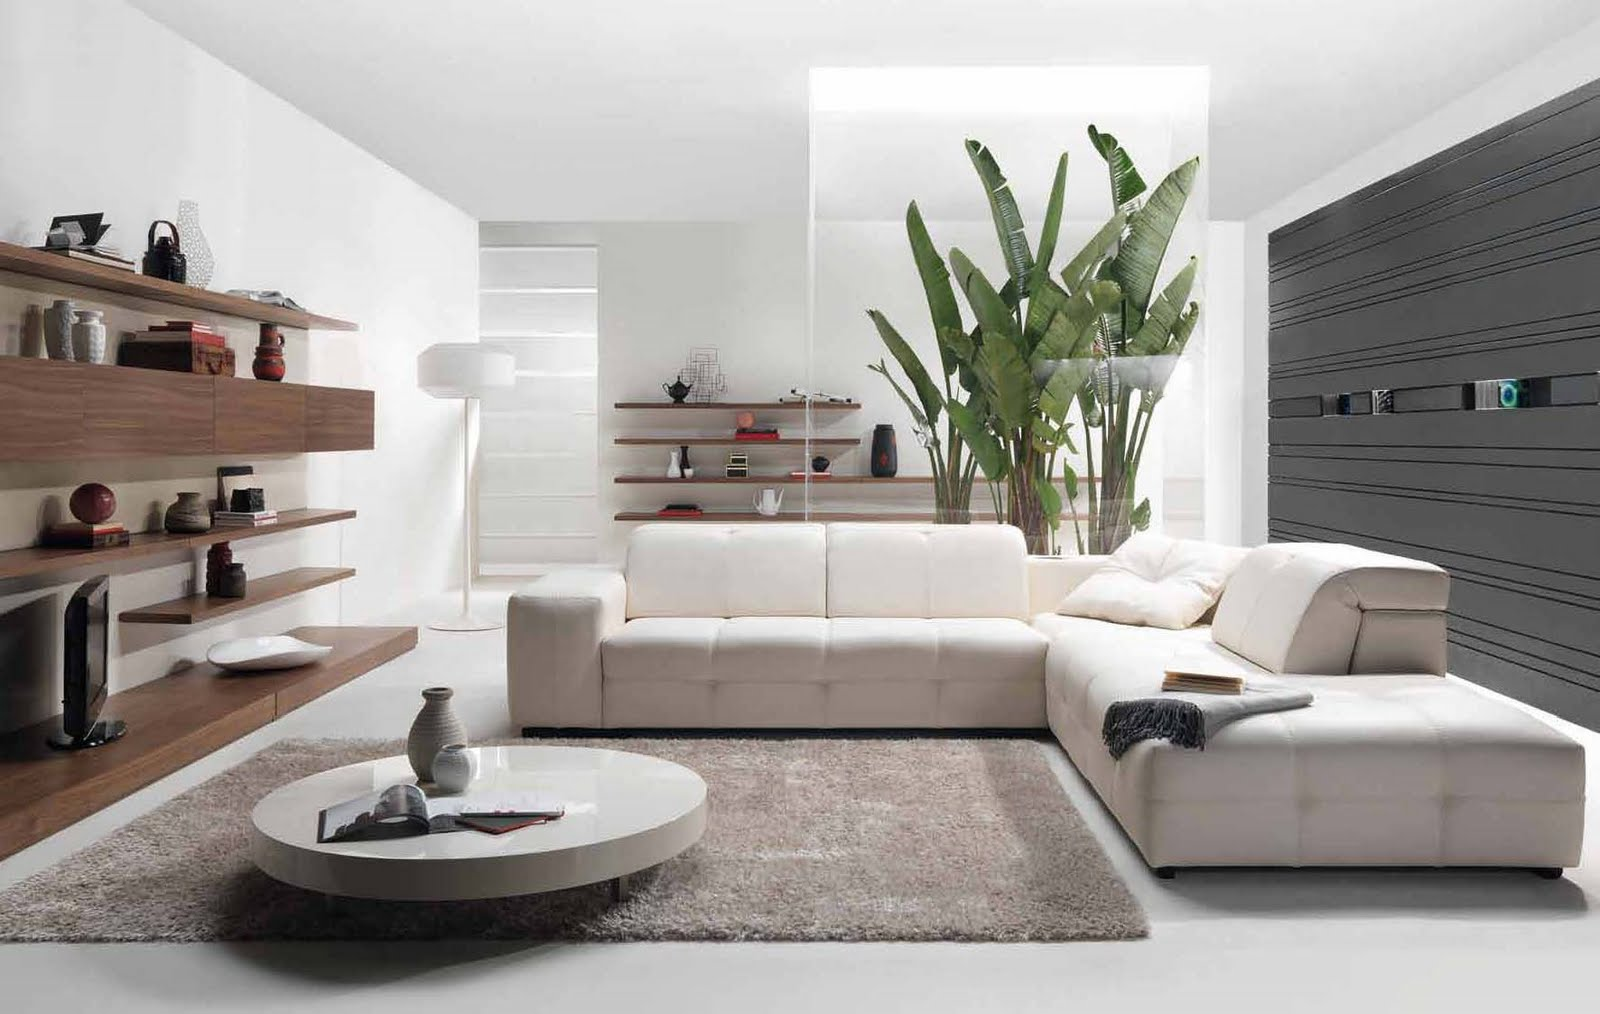 Future house design modern living room interior design for Contemporary living room designs